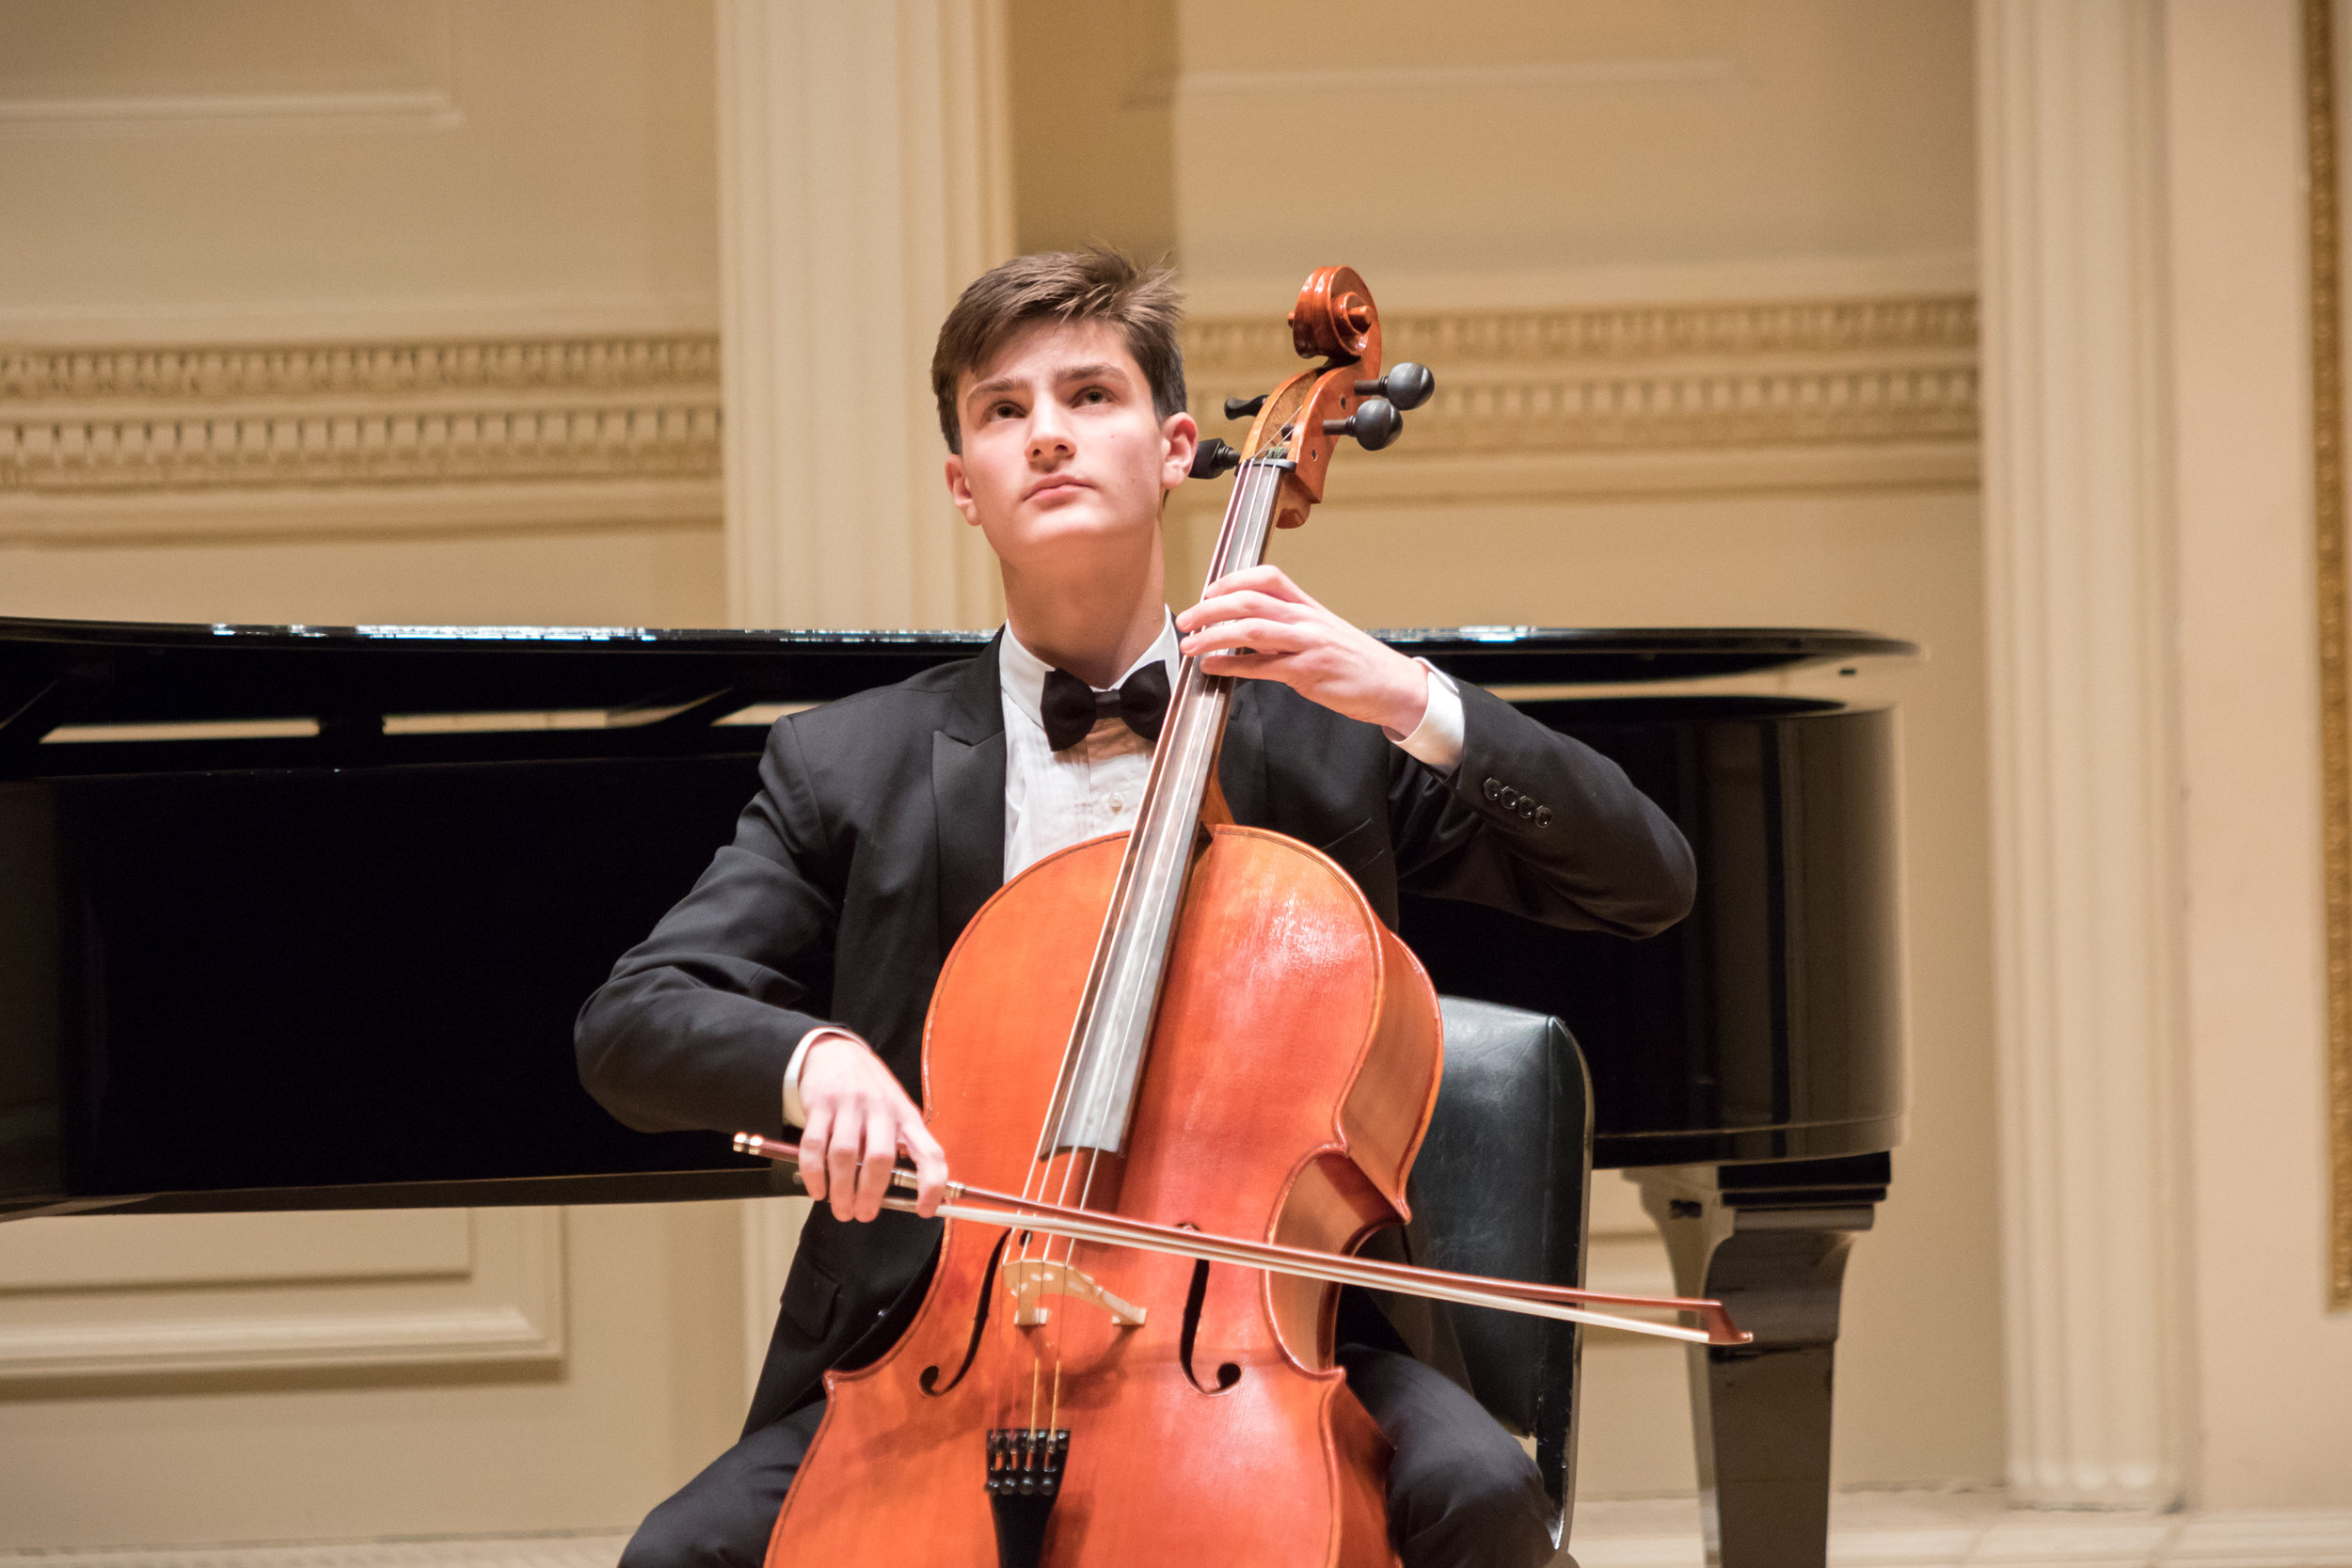 """GIORGIO POMA - 17 year old Giorgio was born in Stockholm, Sweden in 2001, and began playing the cello at the Jr. Conservatory Lilla Akademien in Stockholm, Sweden at the age of six. He currently studies at the Manhattan School of Music Pre-College with Marion Feldman and Emirhan Tunca.Giorgio has given numerous performances including Waldemarsudde, Stockholm, Sweden, Berwaldhallen, Stockholm, Sweden Cirkus Concert Hall in Sweden, Carnegie Hall, Alice Tully Hall and Merkin Concert Hall, where he premiered his own composition """"Generations"""" in honor of those we lost in the Holocaust.Giorgio has been a prize winner in several competitions including the 2018 Rondo Competition, The 2018 Fiorello H. LaGuardia High School Concerto Competition, 2017 Regina Rubinoff award for strings, The East Coast International Competition and Rovere d'Oro in San Bartolomeo, Italy. Giorgio has also performed for the royal family of Sweden and for the Nobel Foundation. Giorgio has participated in several festivals including O/Modernt Festival in Stockholm, Sweden and the Gotland Festival in Gotland, Sweden. Giorgio was grateful to receive the Fiorello H. LaGuardia Alumni &Friends Stephen Kates Memorial Cello Scholarship (June 2018). Giorgio attended on scholarship the Boston University Tanglewood Institute- Young Artist Orchestra program this past summer 2018. In October 2018 Giorgio received the Manhattan School of Music Marion Feldman Scholarship."""